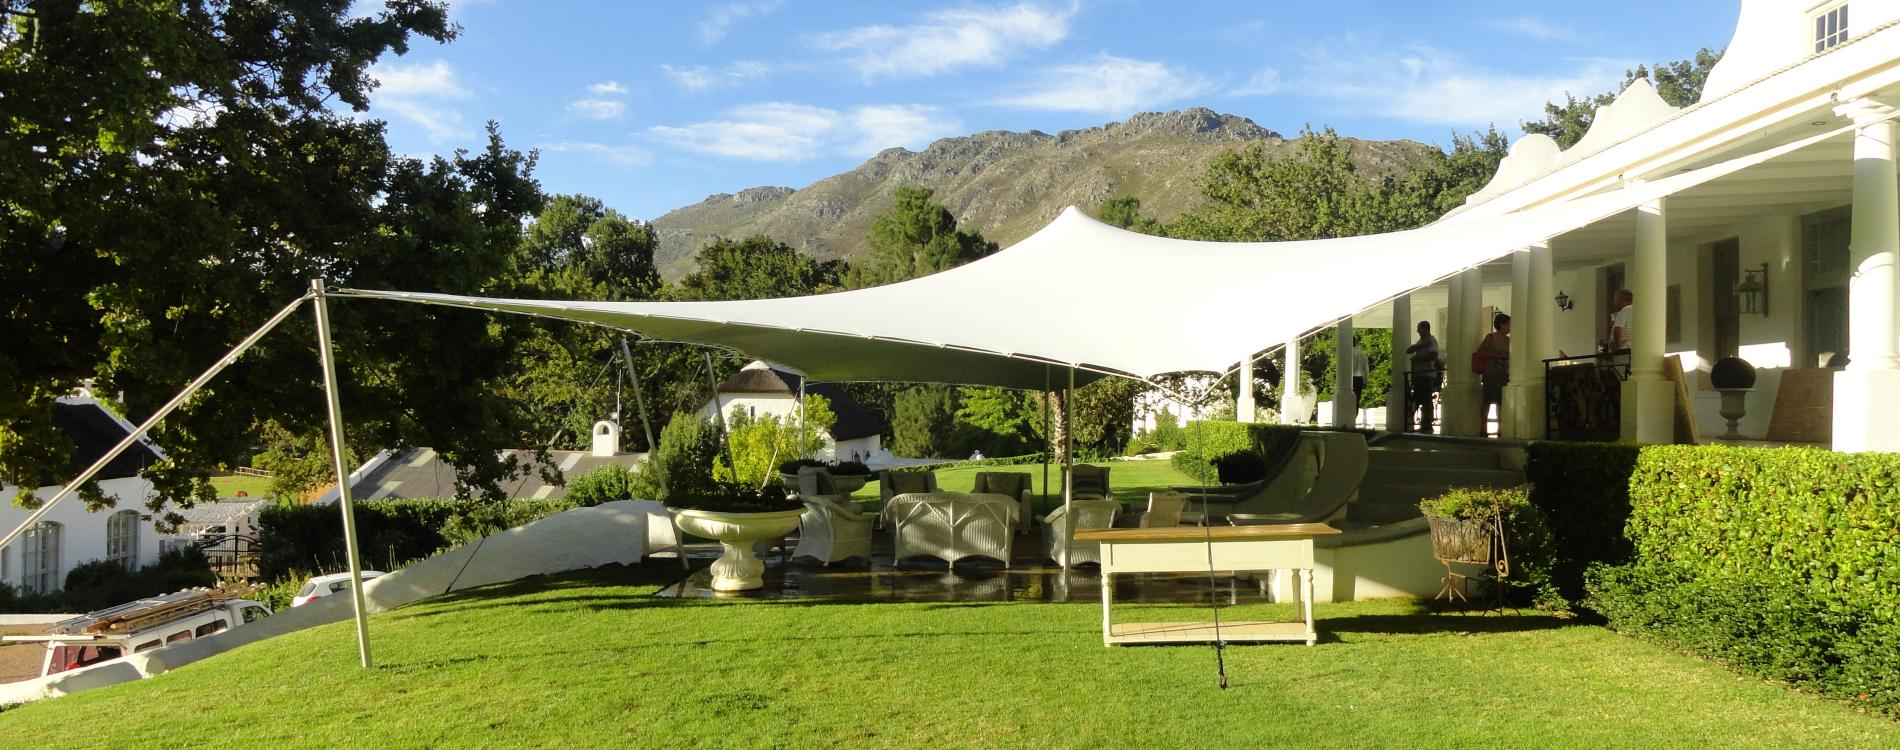 stretch-tent-banner3 & Stretch tent hire for festivals parties weddings and events in ...